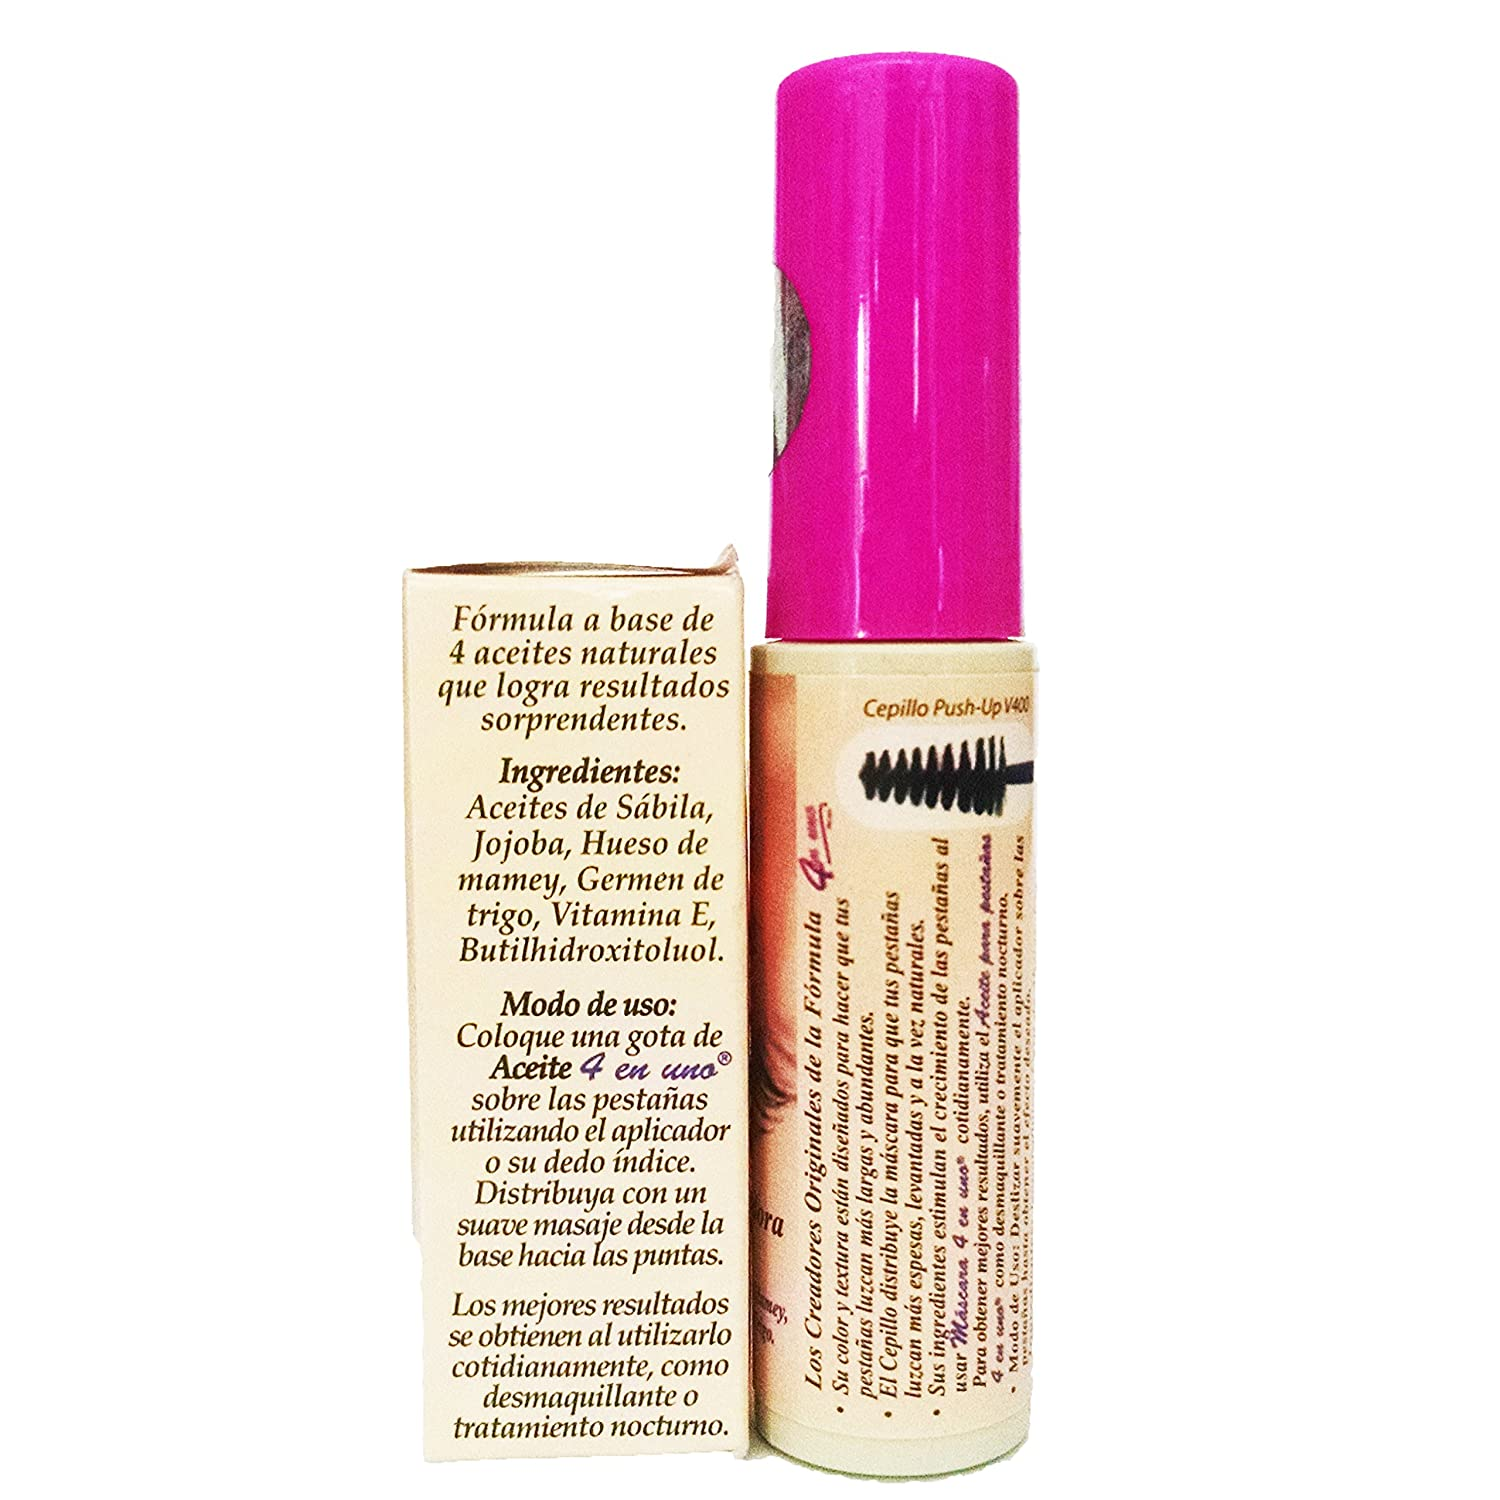 Amazon.com : Combo Pack-Prosa Mascara For Enlarging Eyelashes 1 rimel con aceite de mamey oil Enlarging Eyelashes : Beauty